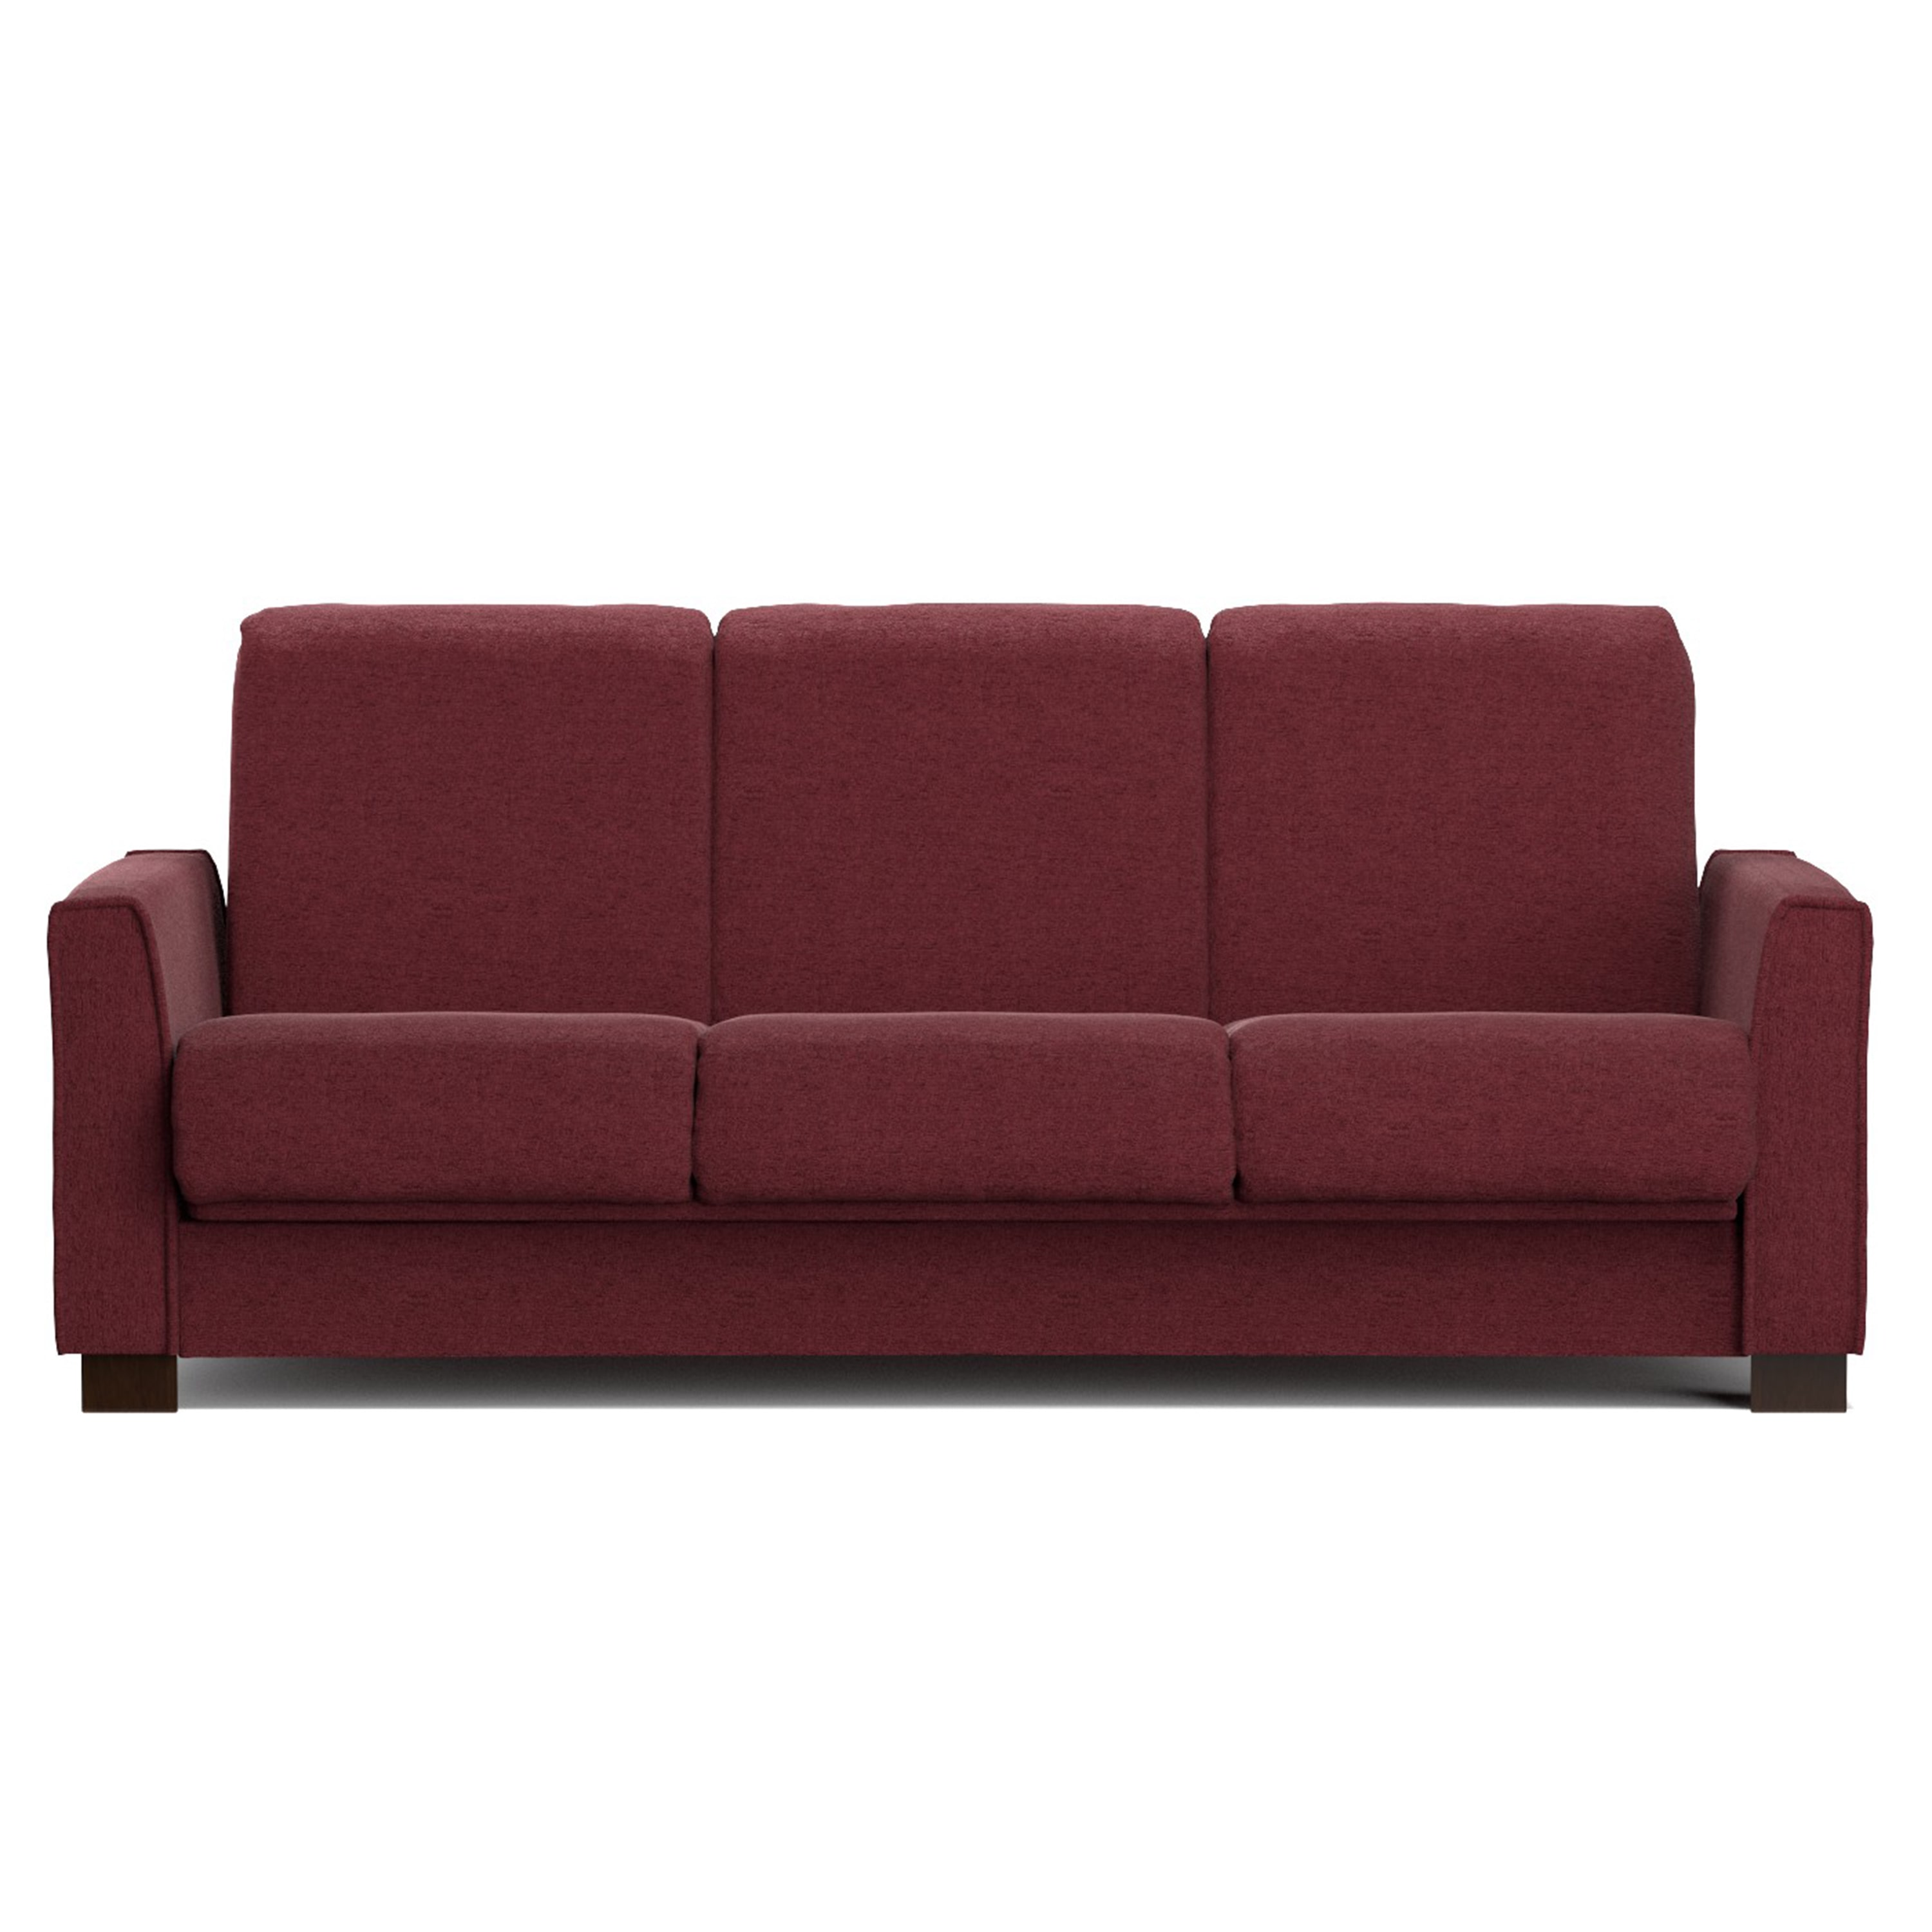 Review Handy Living Bryant Berry Red Chenille Convert a Couch Futon Sofa Sleeper Modern - Fresh handy living convert-a-couch sleeper sofa Ideas